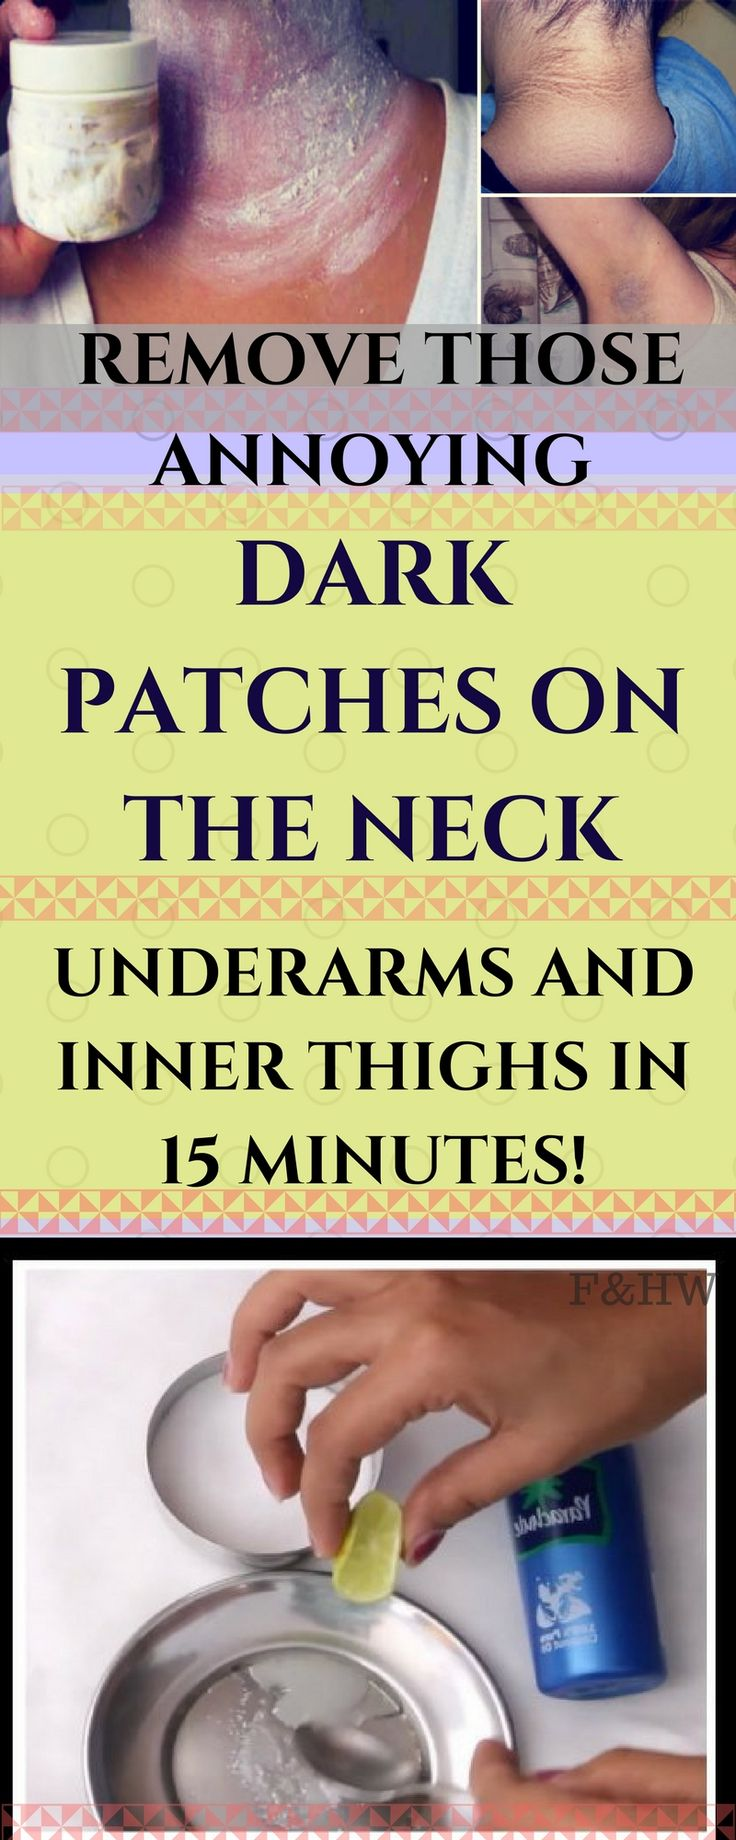 Remove Those Annoying Dark Patches on The Neck, Underarms and Inner Thighs in 15 Minutes!